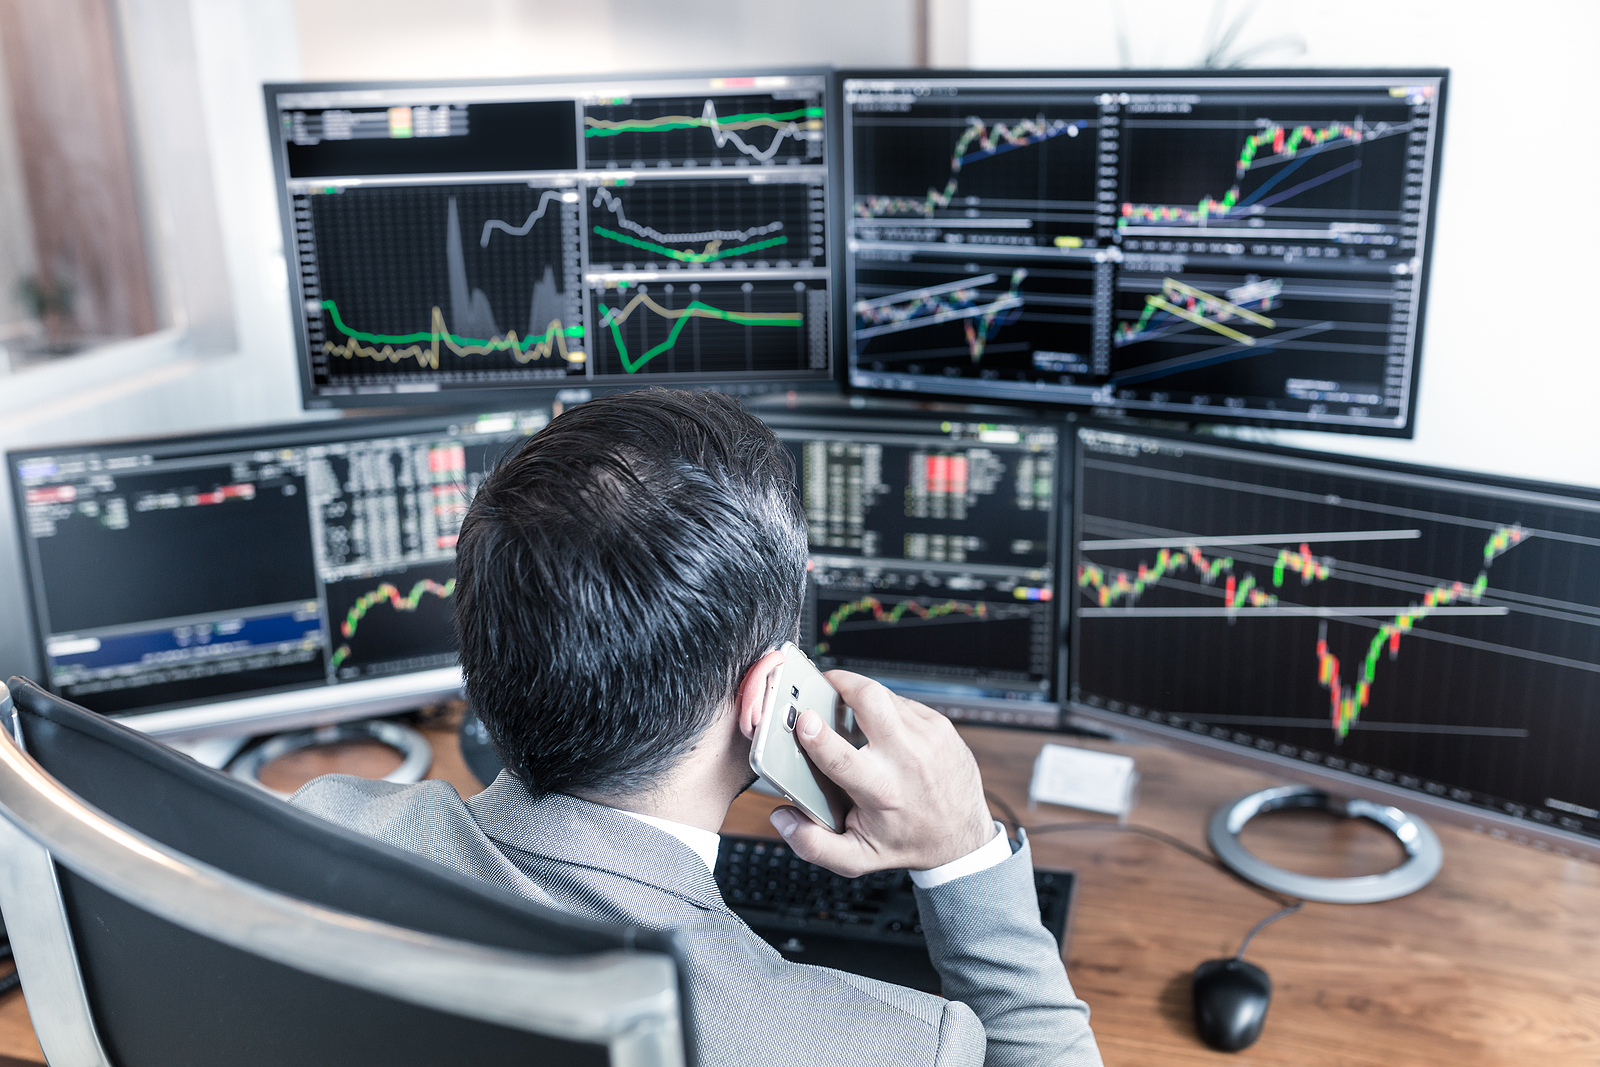 Trader in front of five trading screens